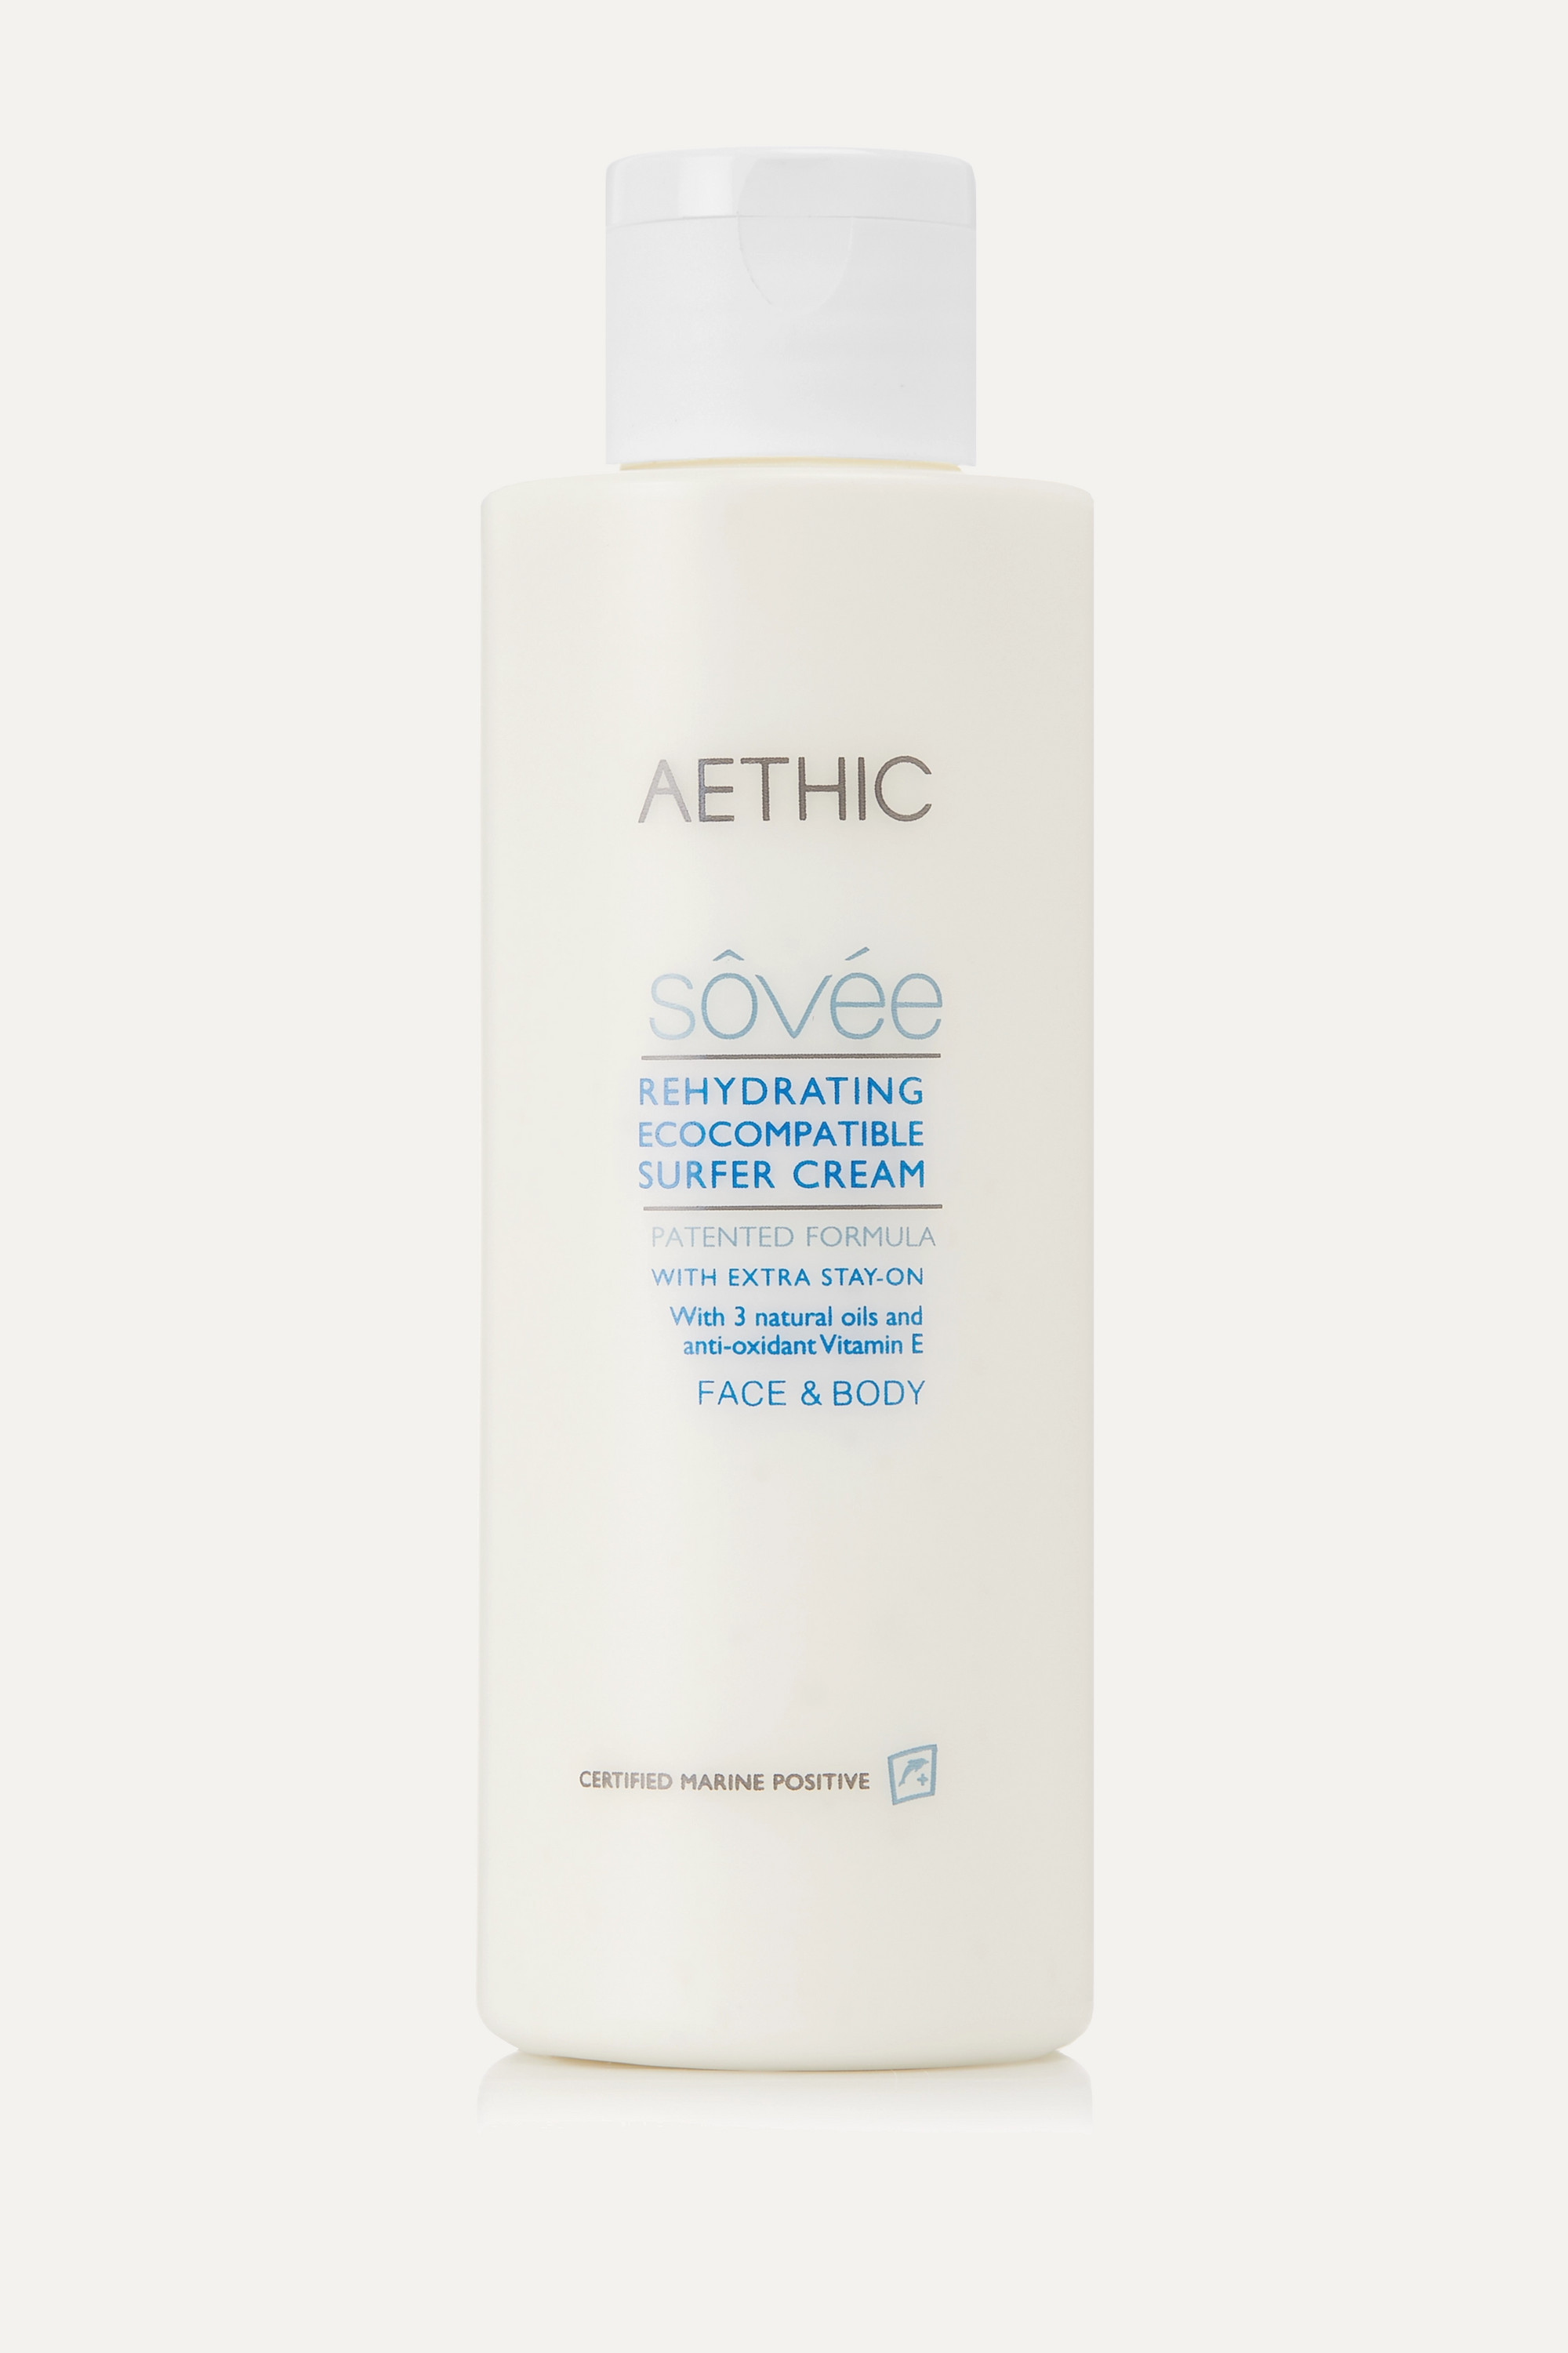 Aethic Rehydrating Eco-Compatible Surfer Cream, 150ml